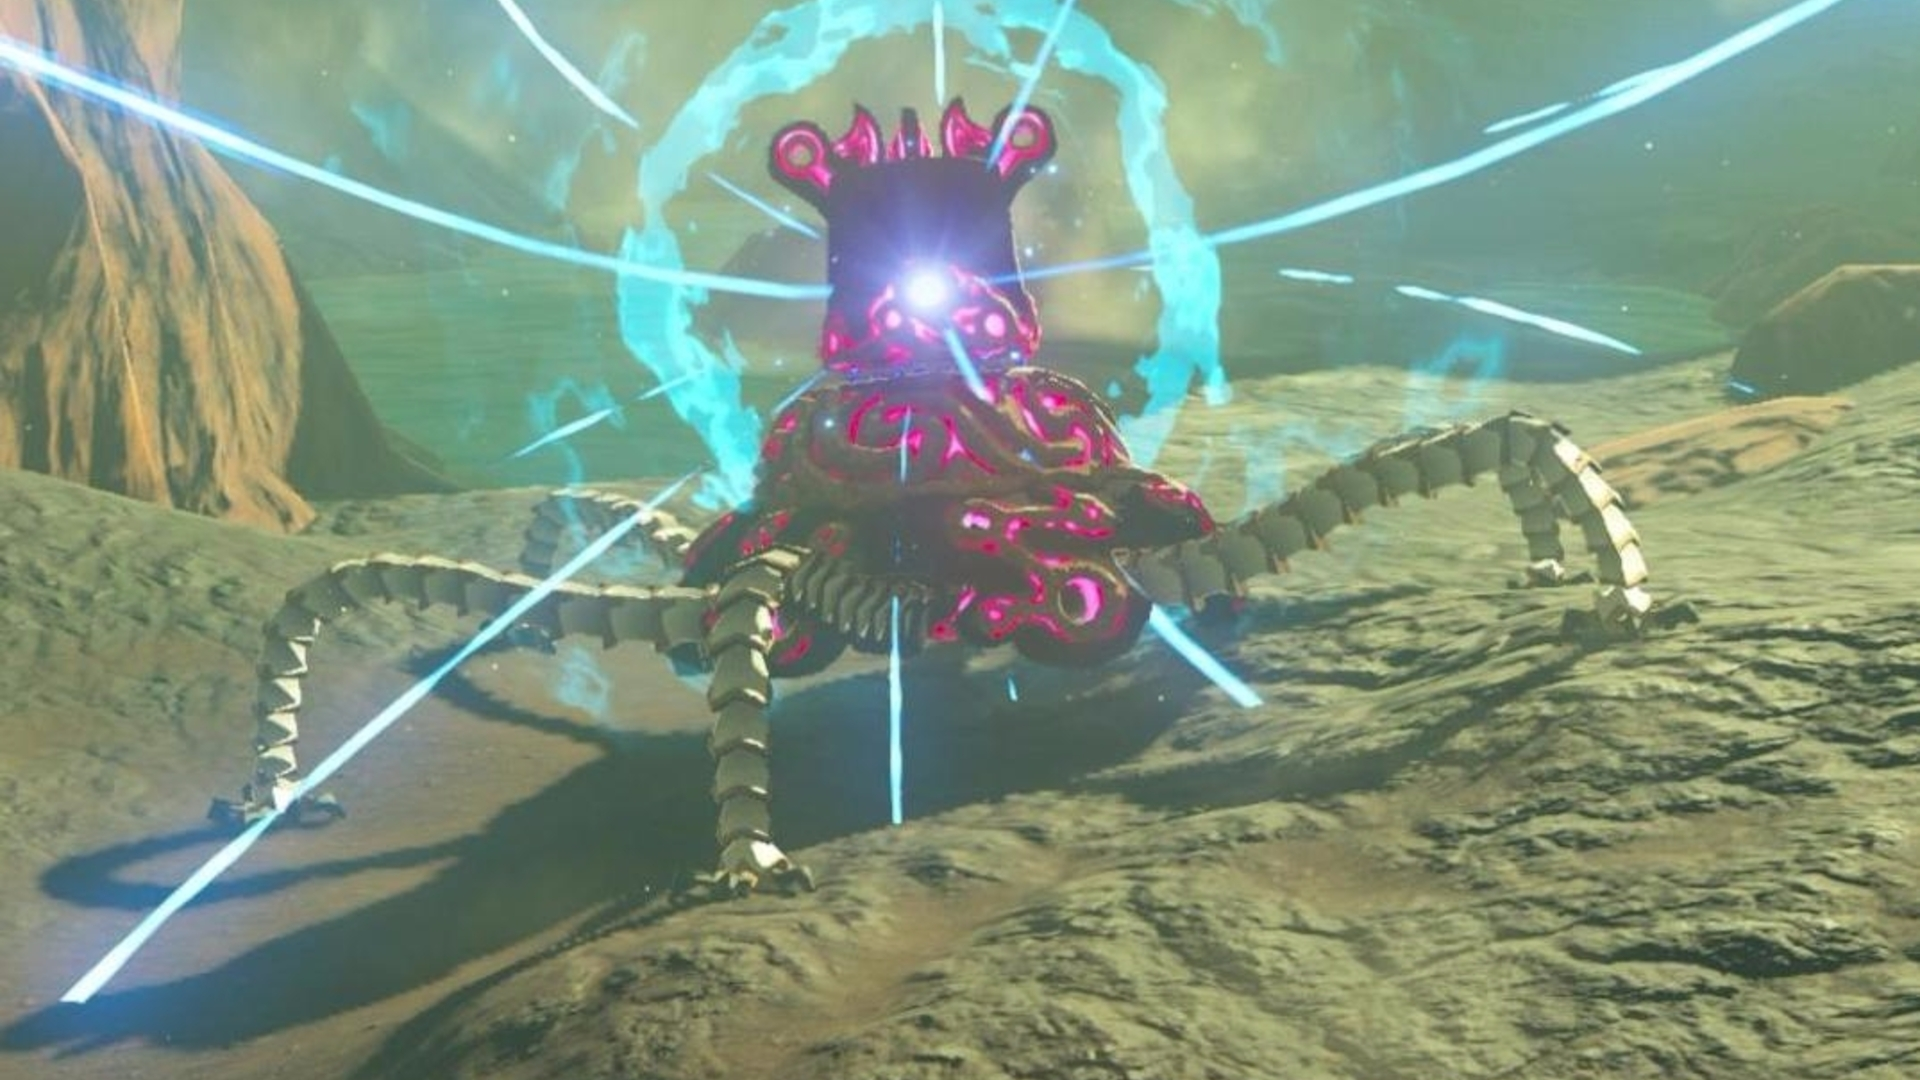 zelda breath of the wild guardians how to beat guardian s easily